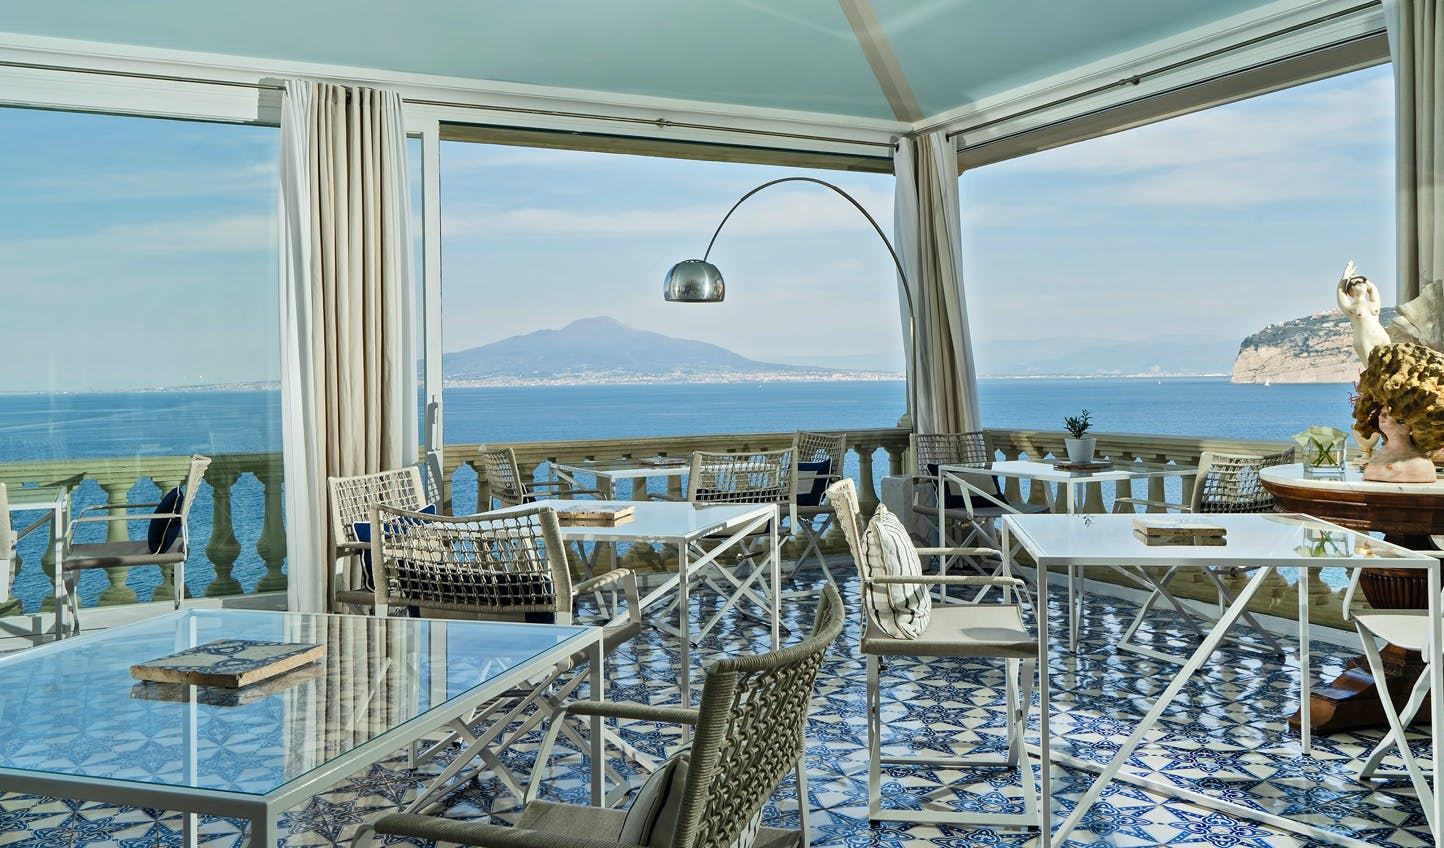 Luxury hotels in Sorrento